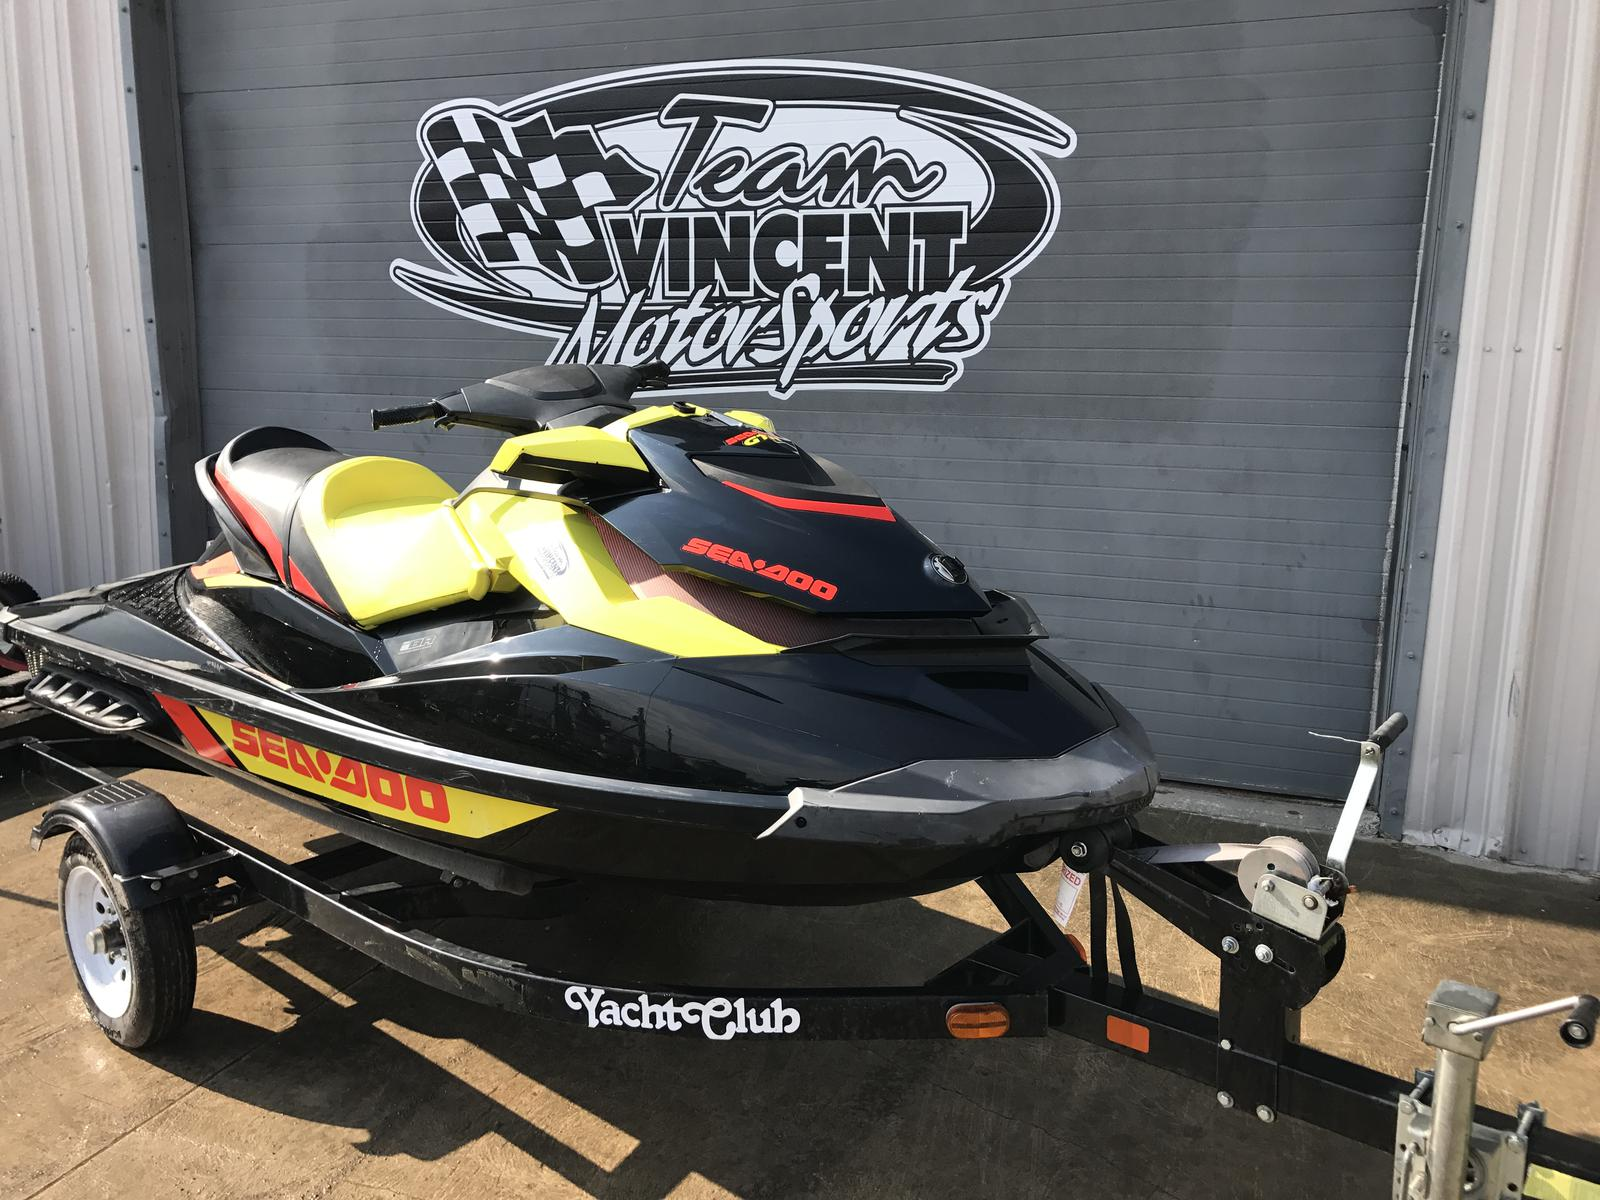 For Sale: 2014 Sea Doo Pwc Used Gtr 215 ft<br/>Team Vincent Motorsports Inc